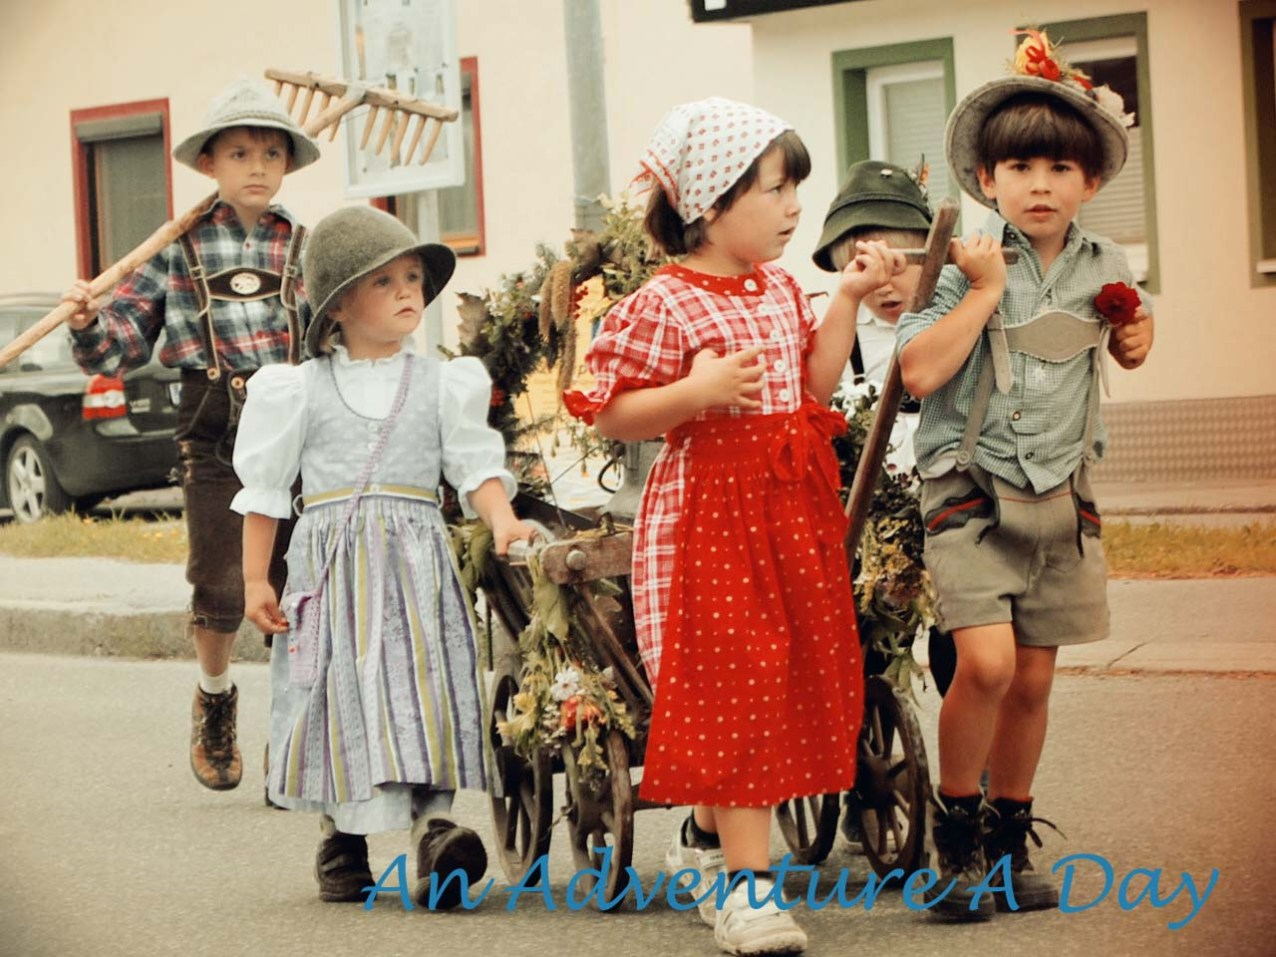 Children participate in the almabtrieb parade